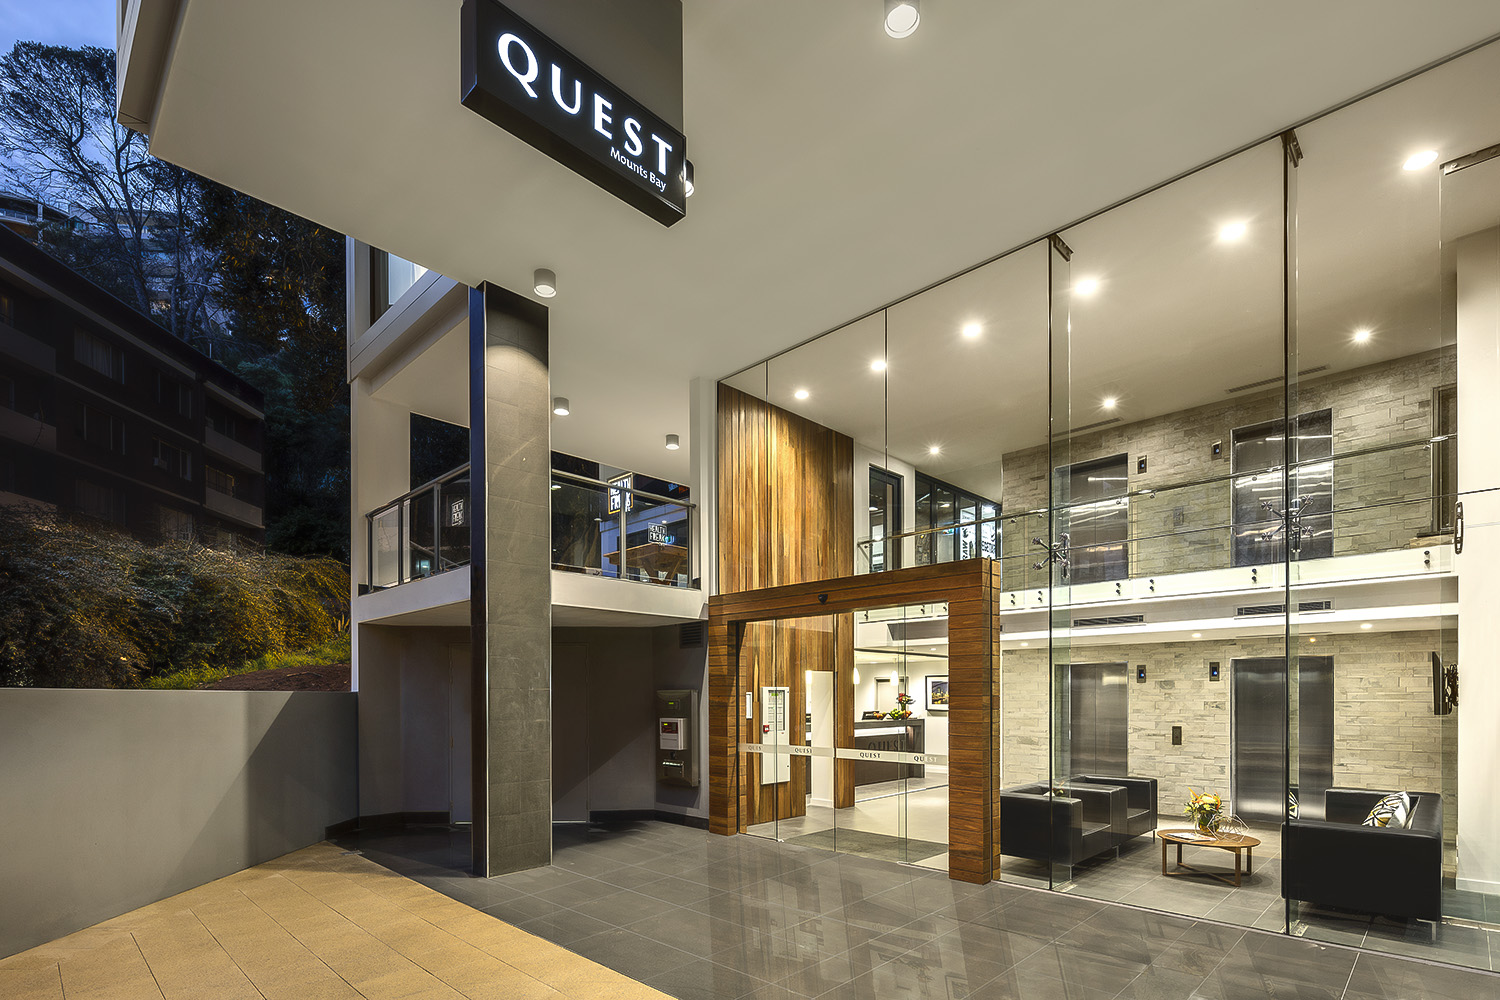 perth serviced apartments accommodation quest perth. Black Bedroom Furniture Sets. Home Design Ideas